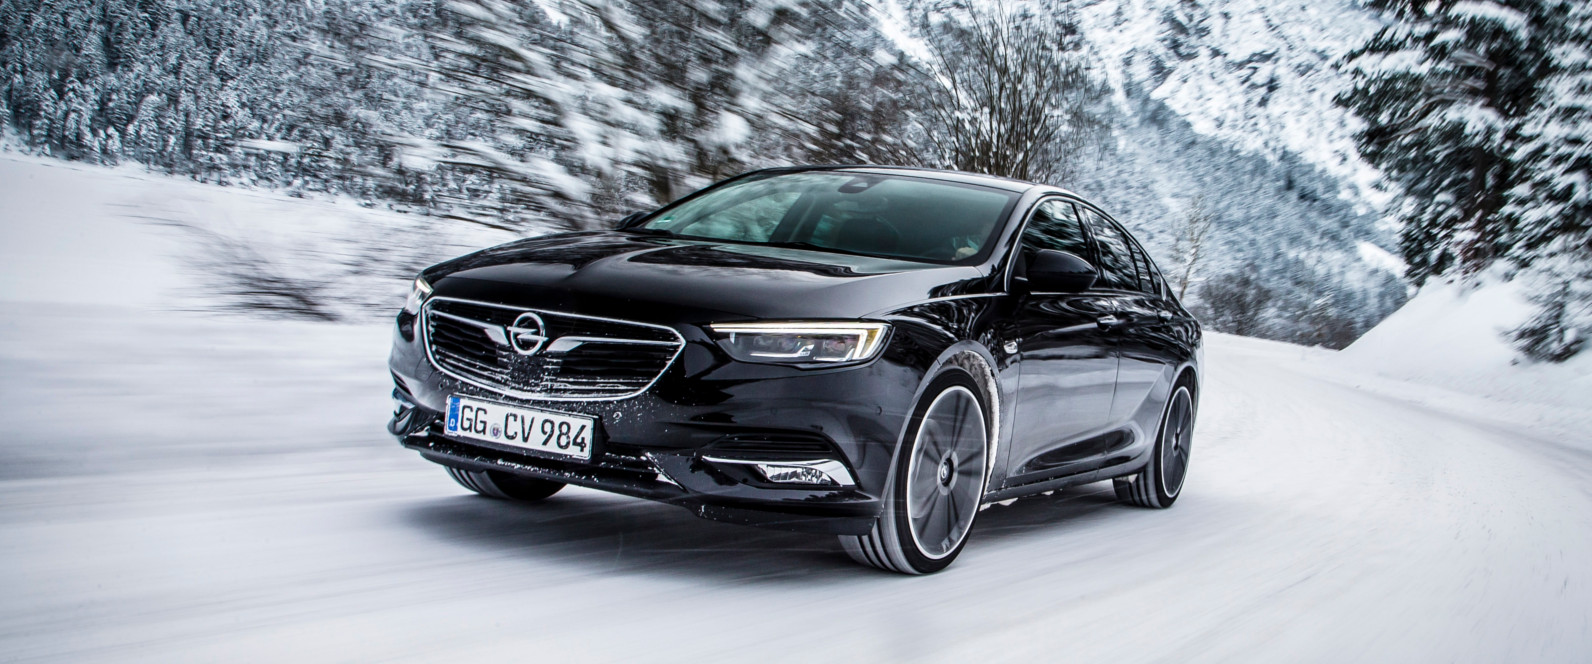 Lateral Opel Insignia Grand Sport